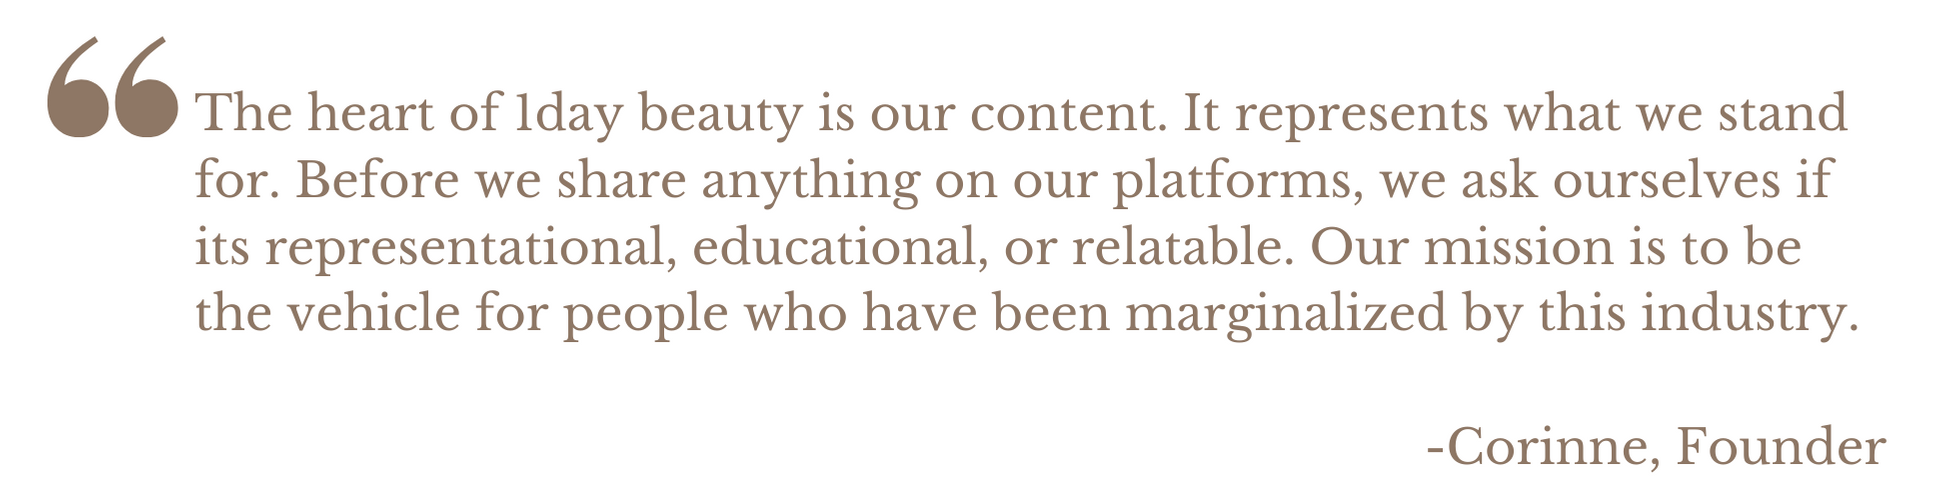 The heart of 1day beauty is our content. It represents what we stand for. Before we share anything on our platforms, we ask ourselves if its representational, educational, or relatable. Our mission is to be thevehicle for people who have been marginalized by this industry.  -Corinne, Founder